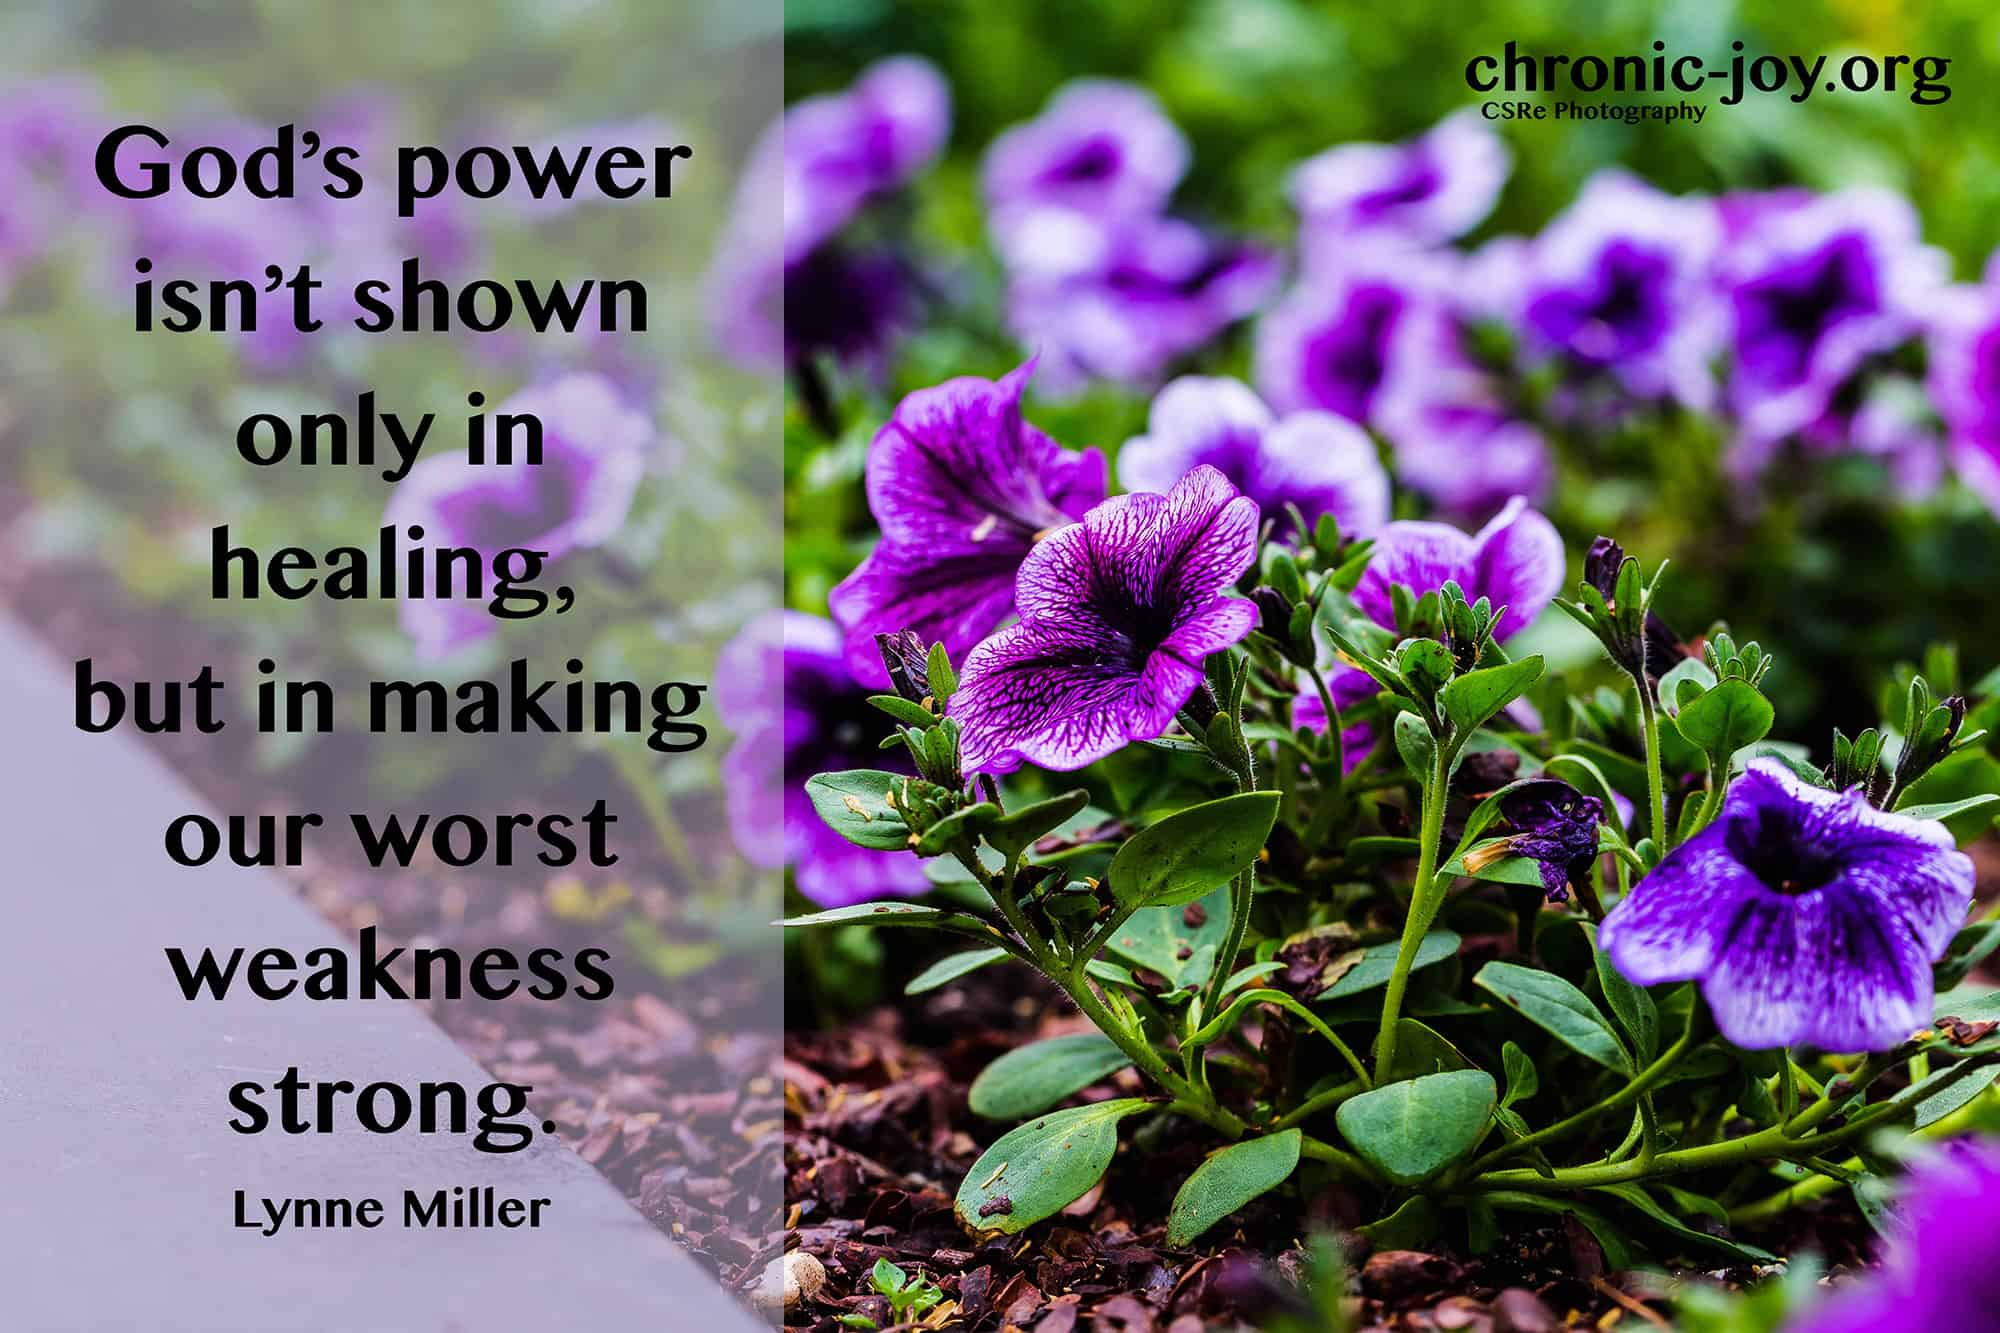 God's power isn't shown only in healing...